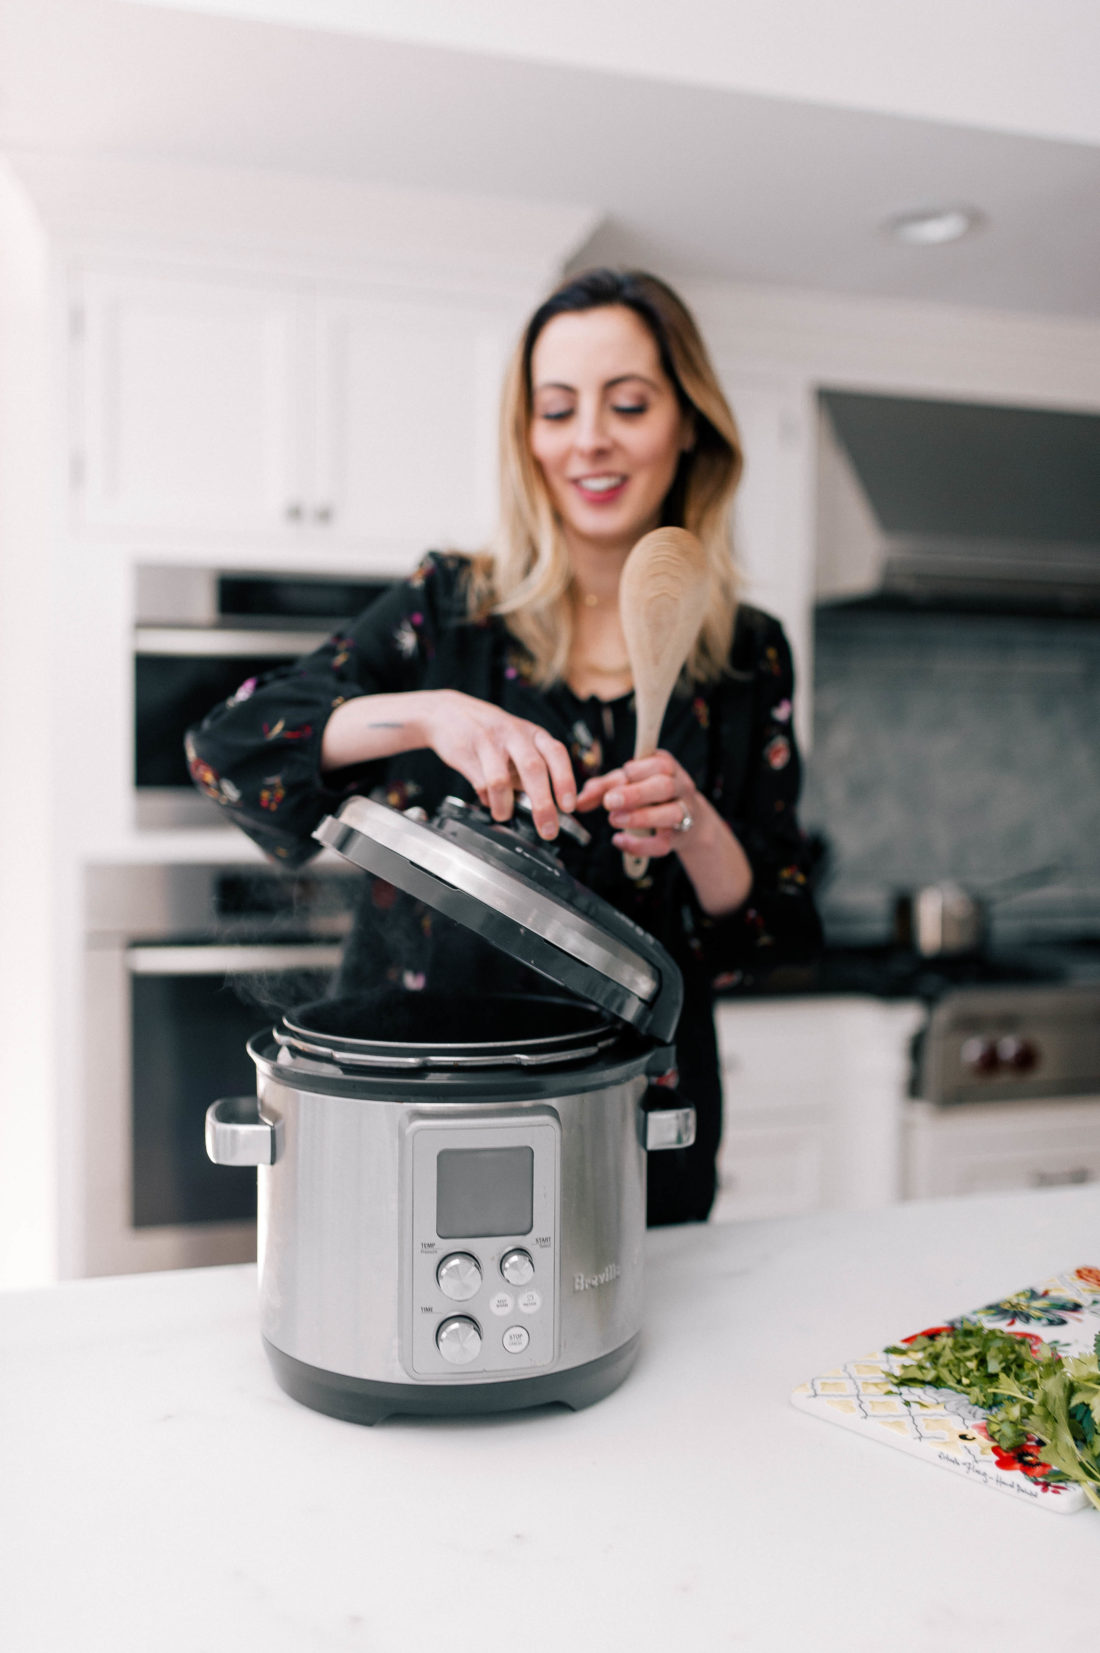 Eva Amurri Martino opens her slow cooker where she has been preparing meatballs